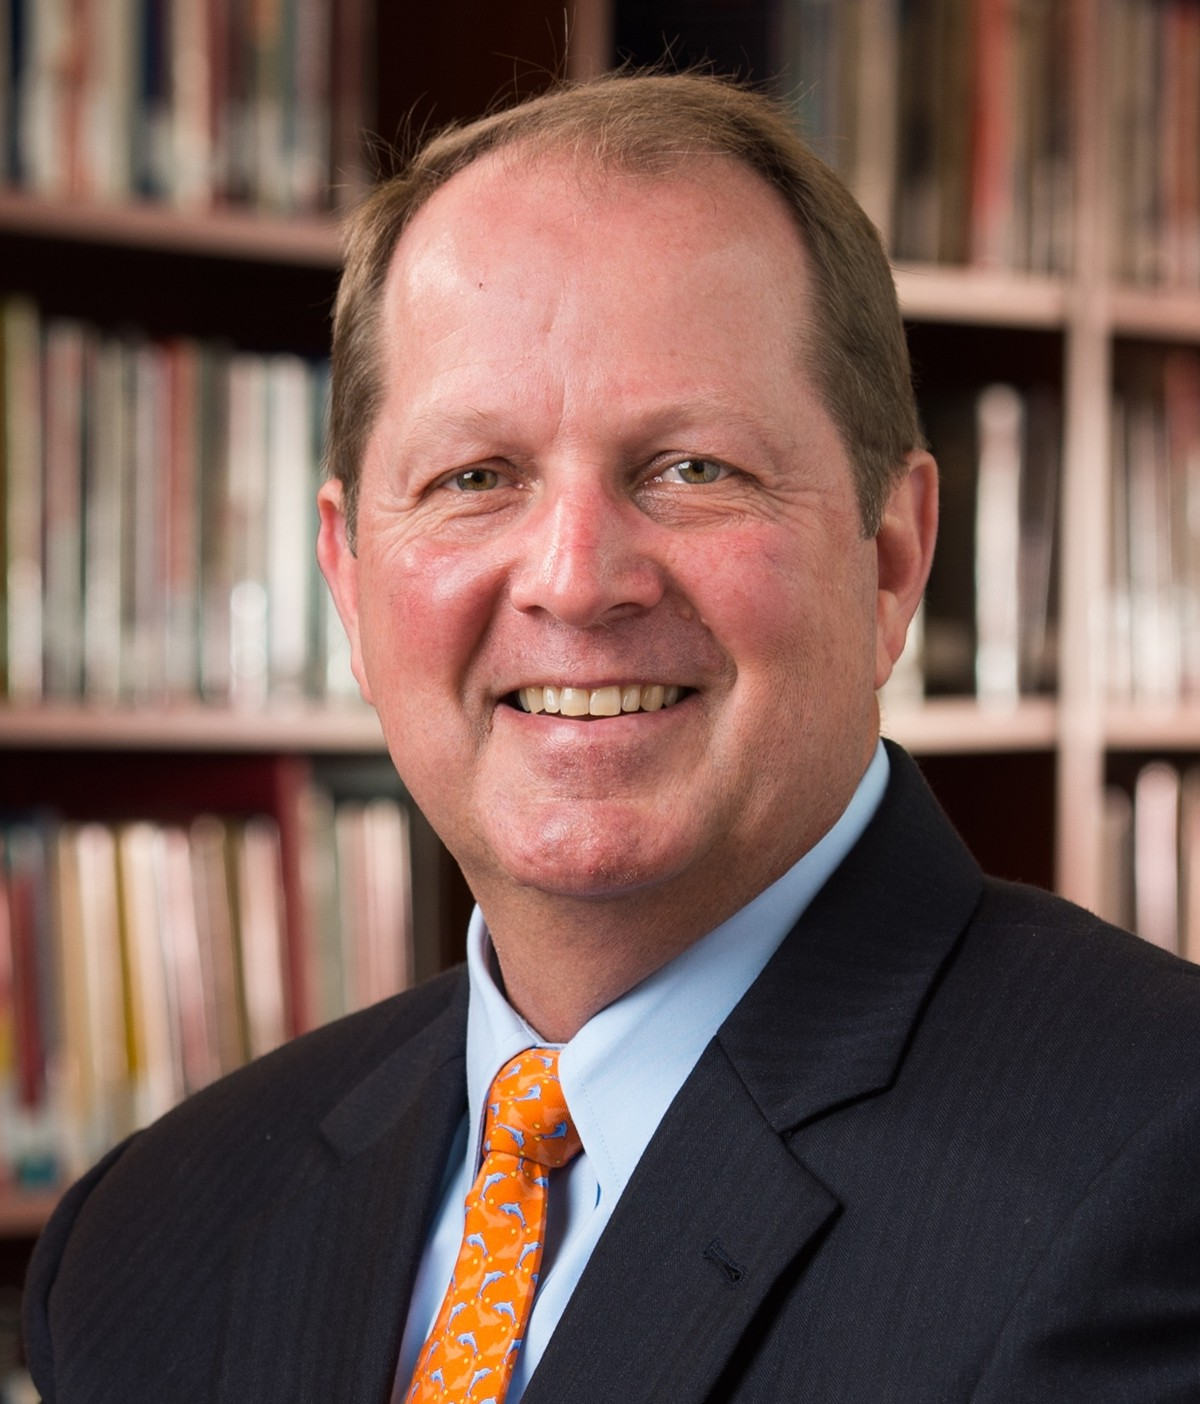 John P. Aldrich | Vice President of Military, Veterans and Community College Outreach, American Public University System